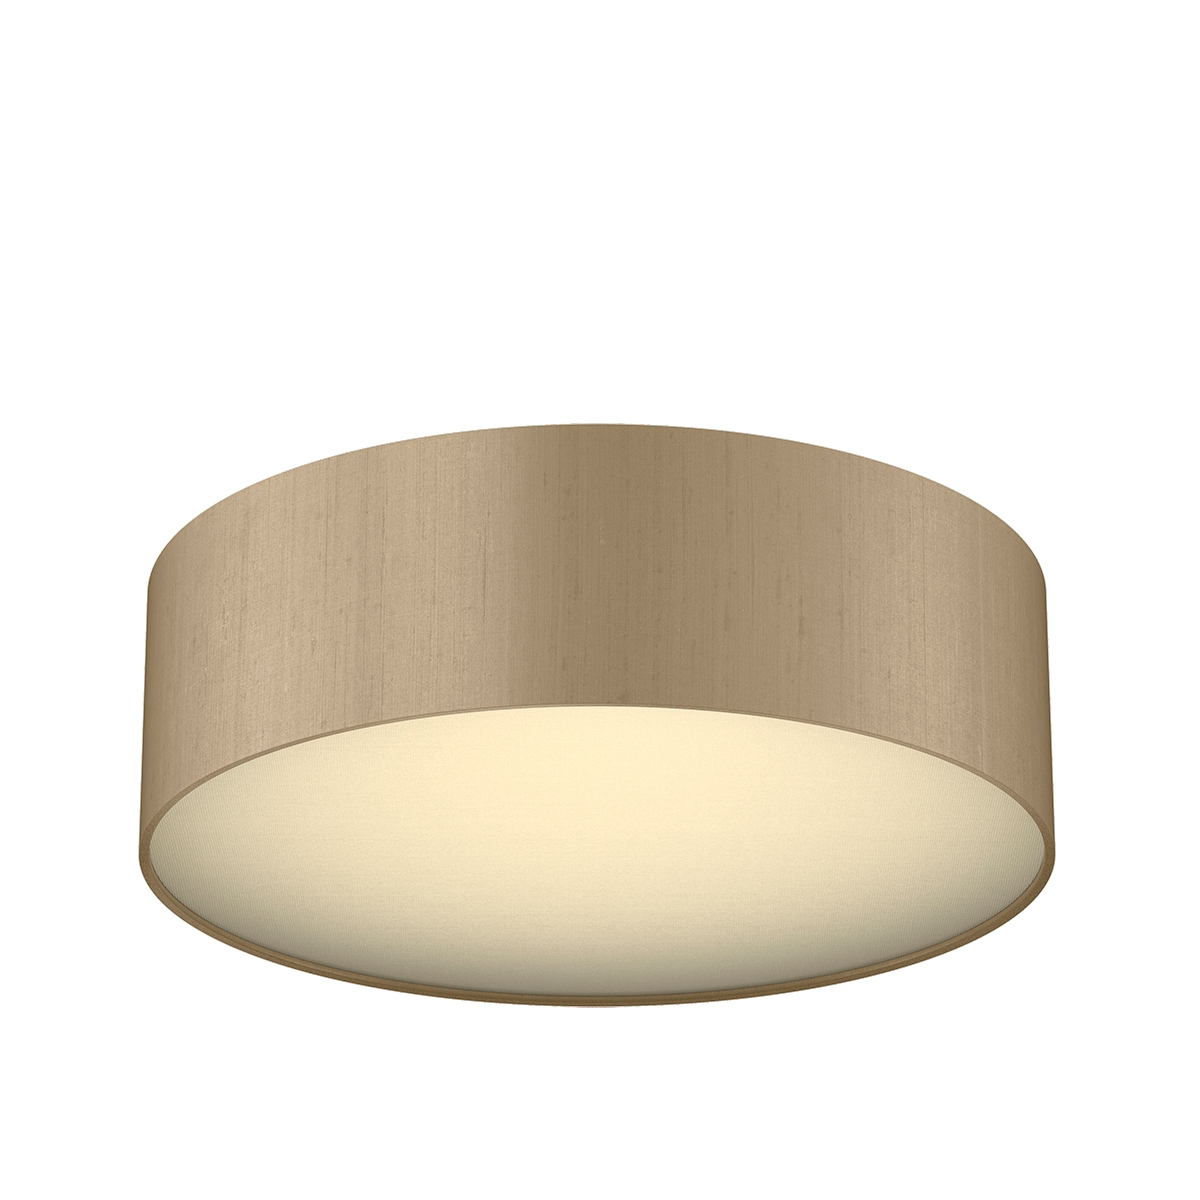 Paolo 50cm 3 Light Ceiling Flush